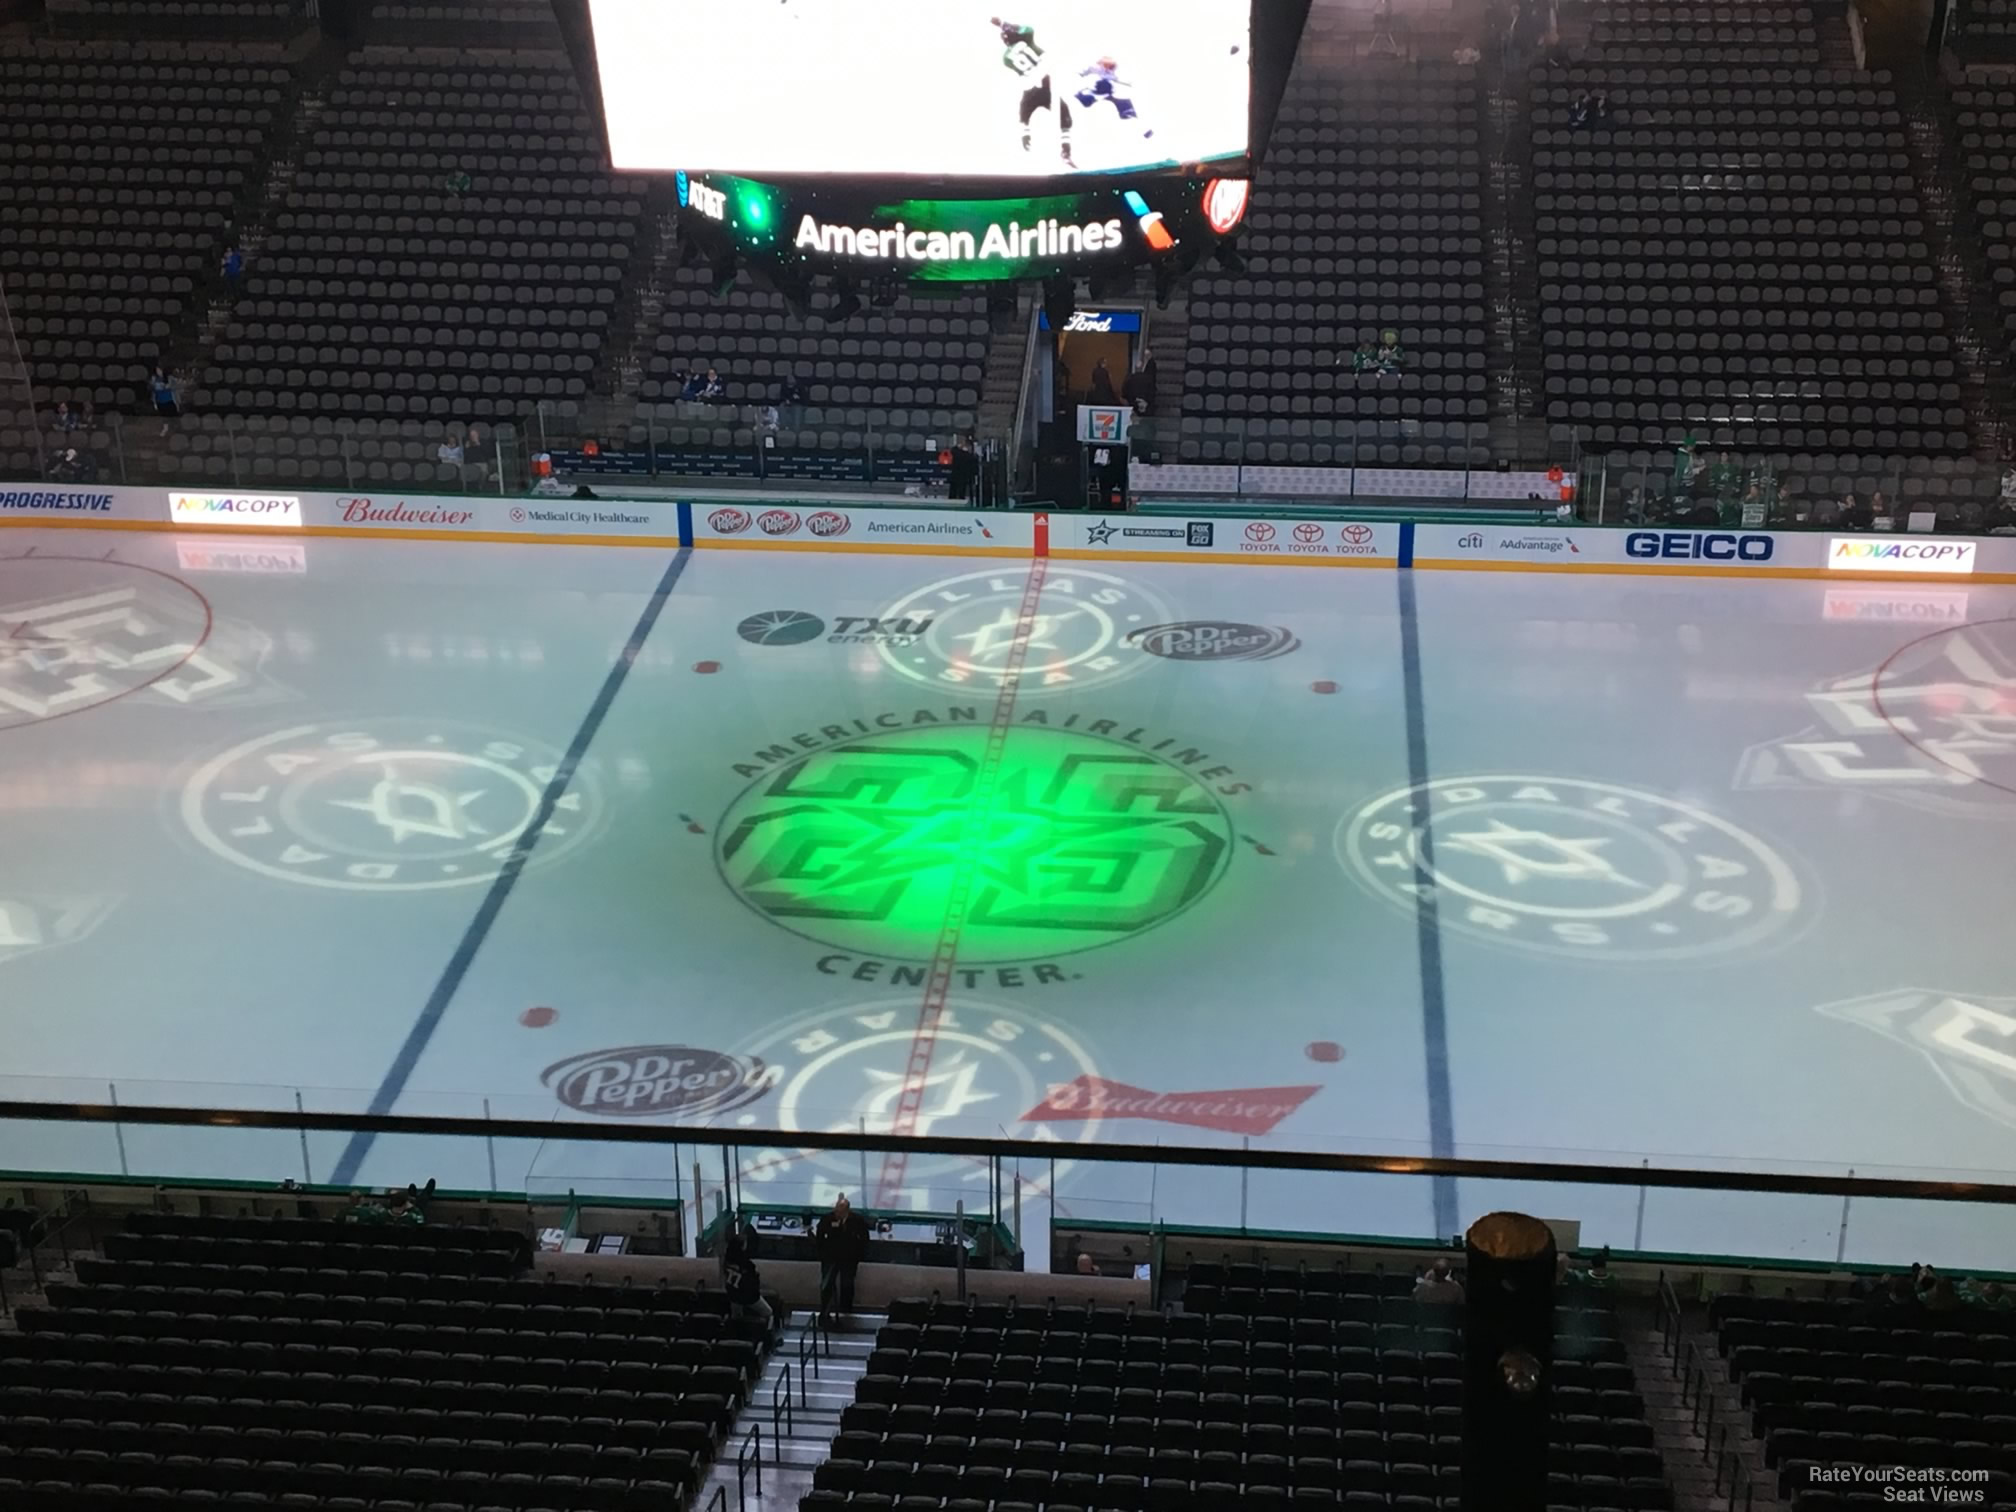 Dallas Stars Seat View for American Airlines Center Section 309, Row D